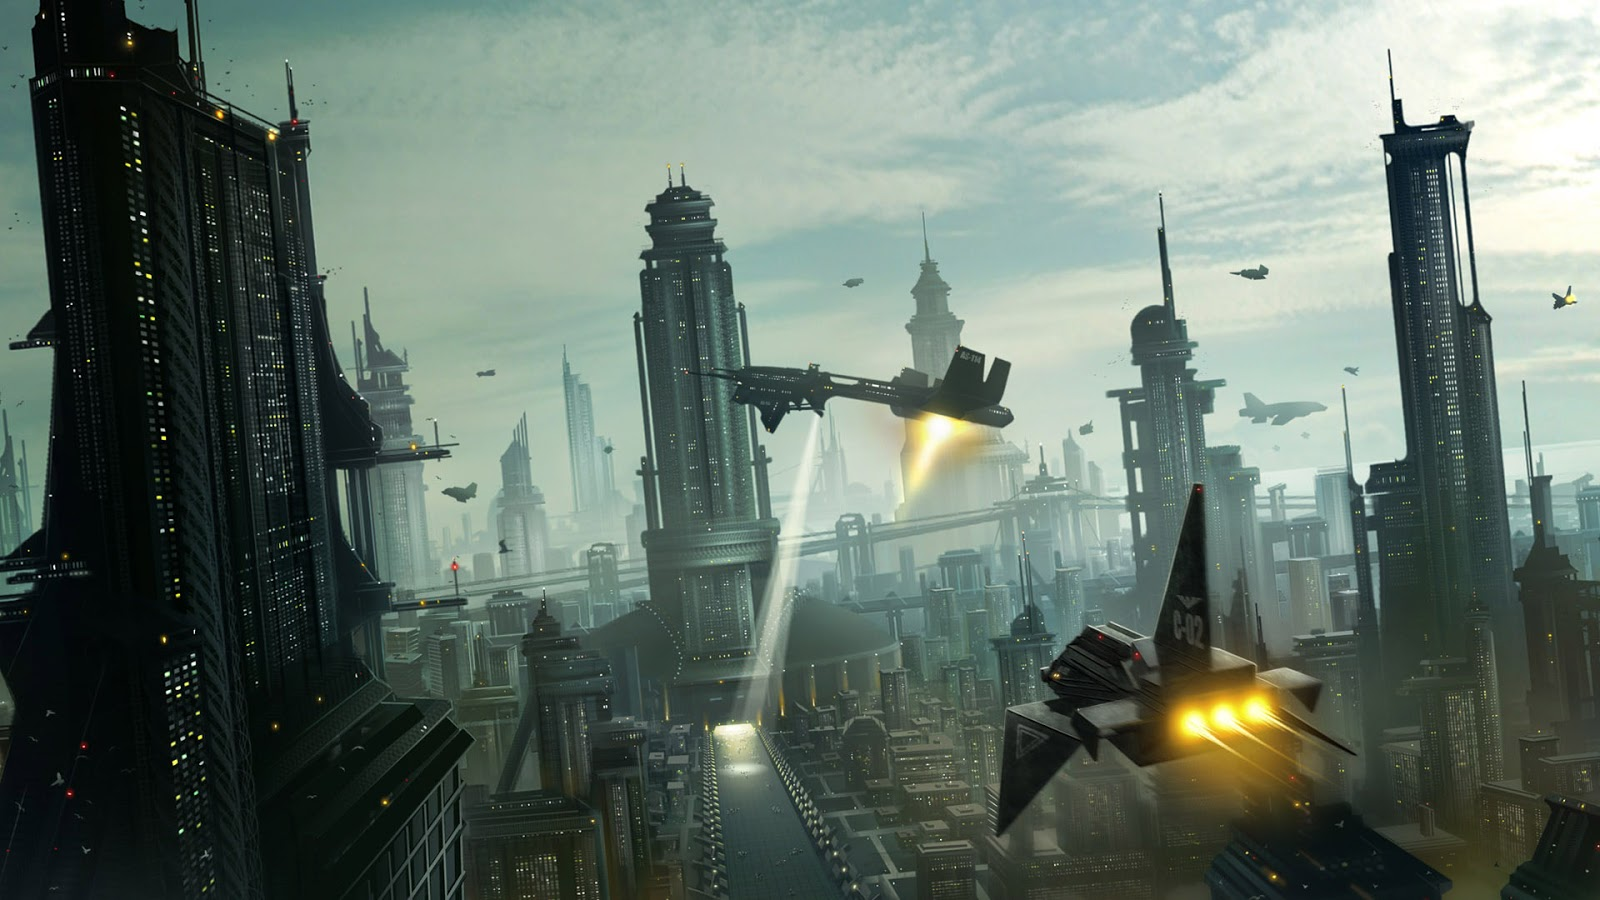 Futuristic city with spaceships and skyscapes